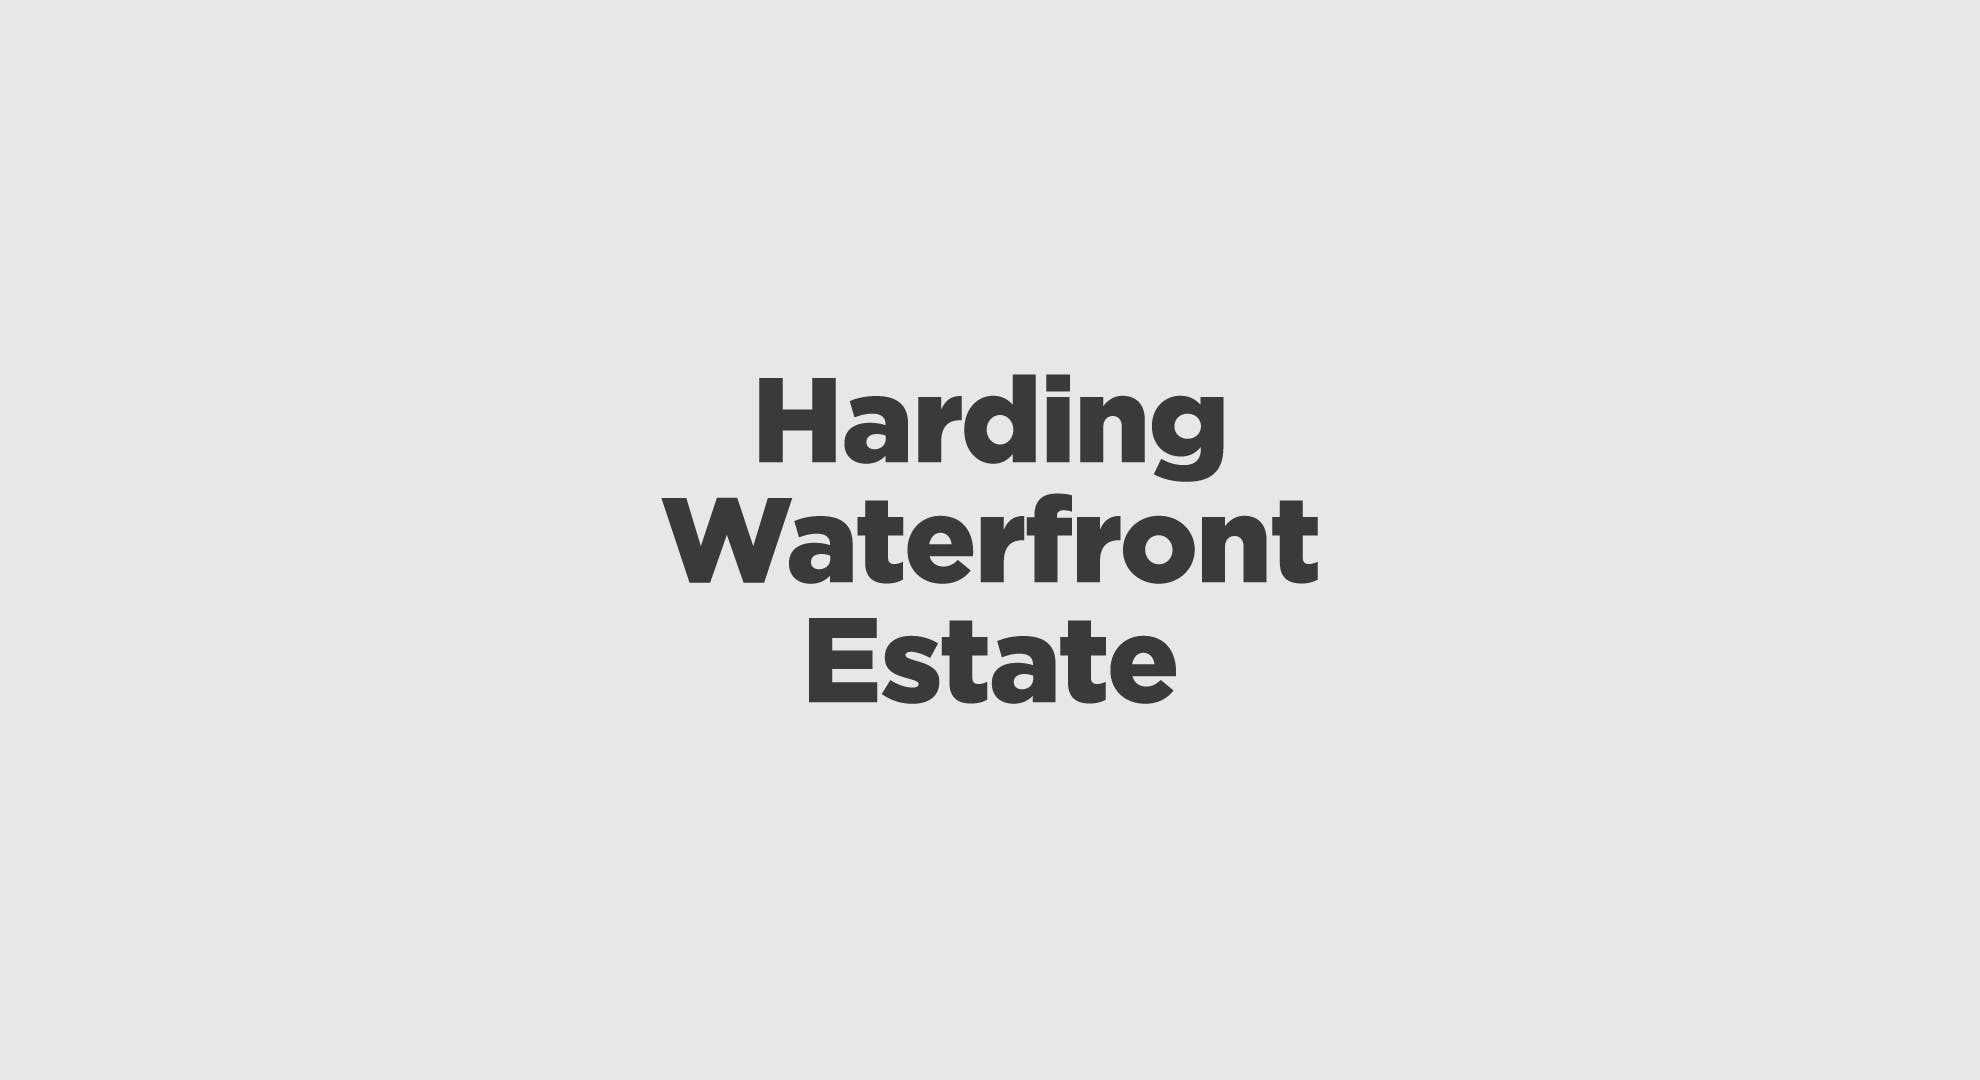 Harding Waterfront Estate